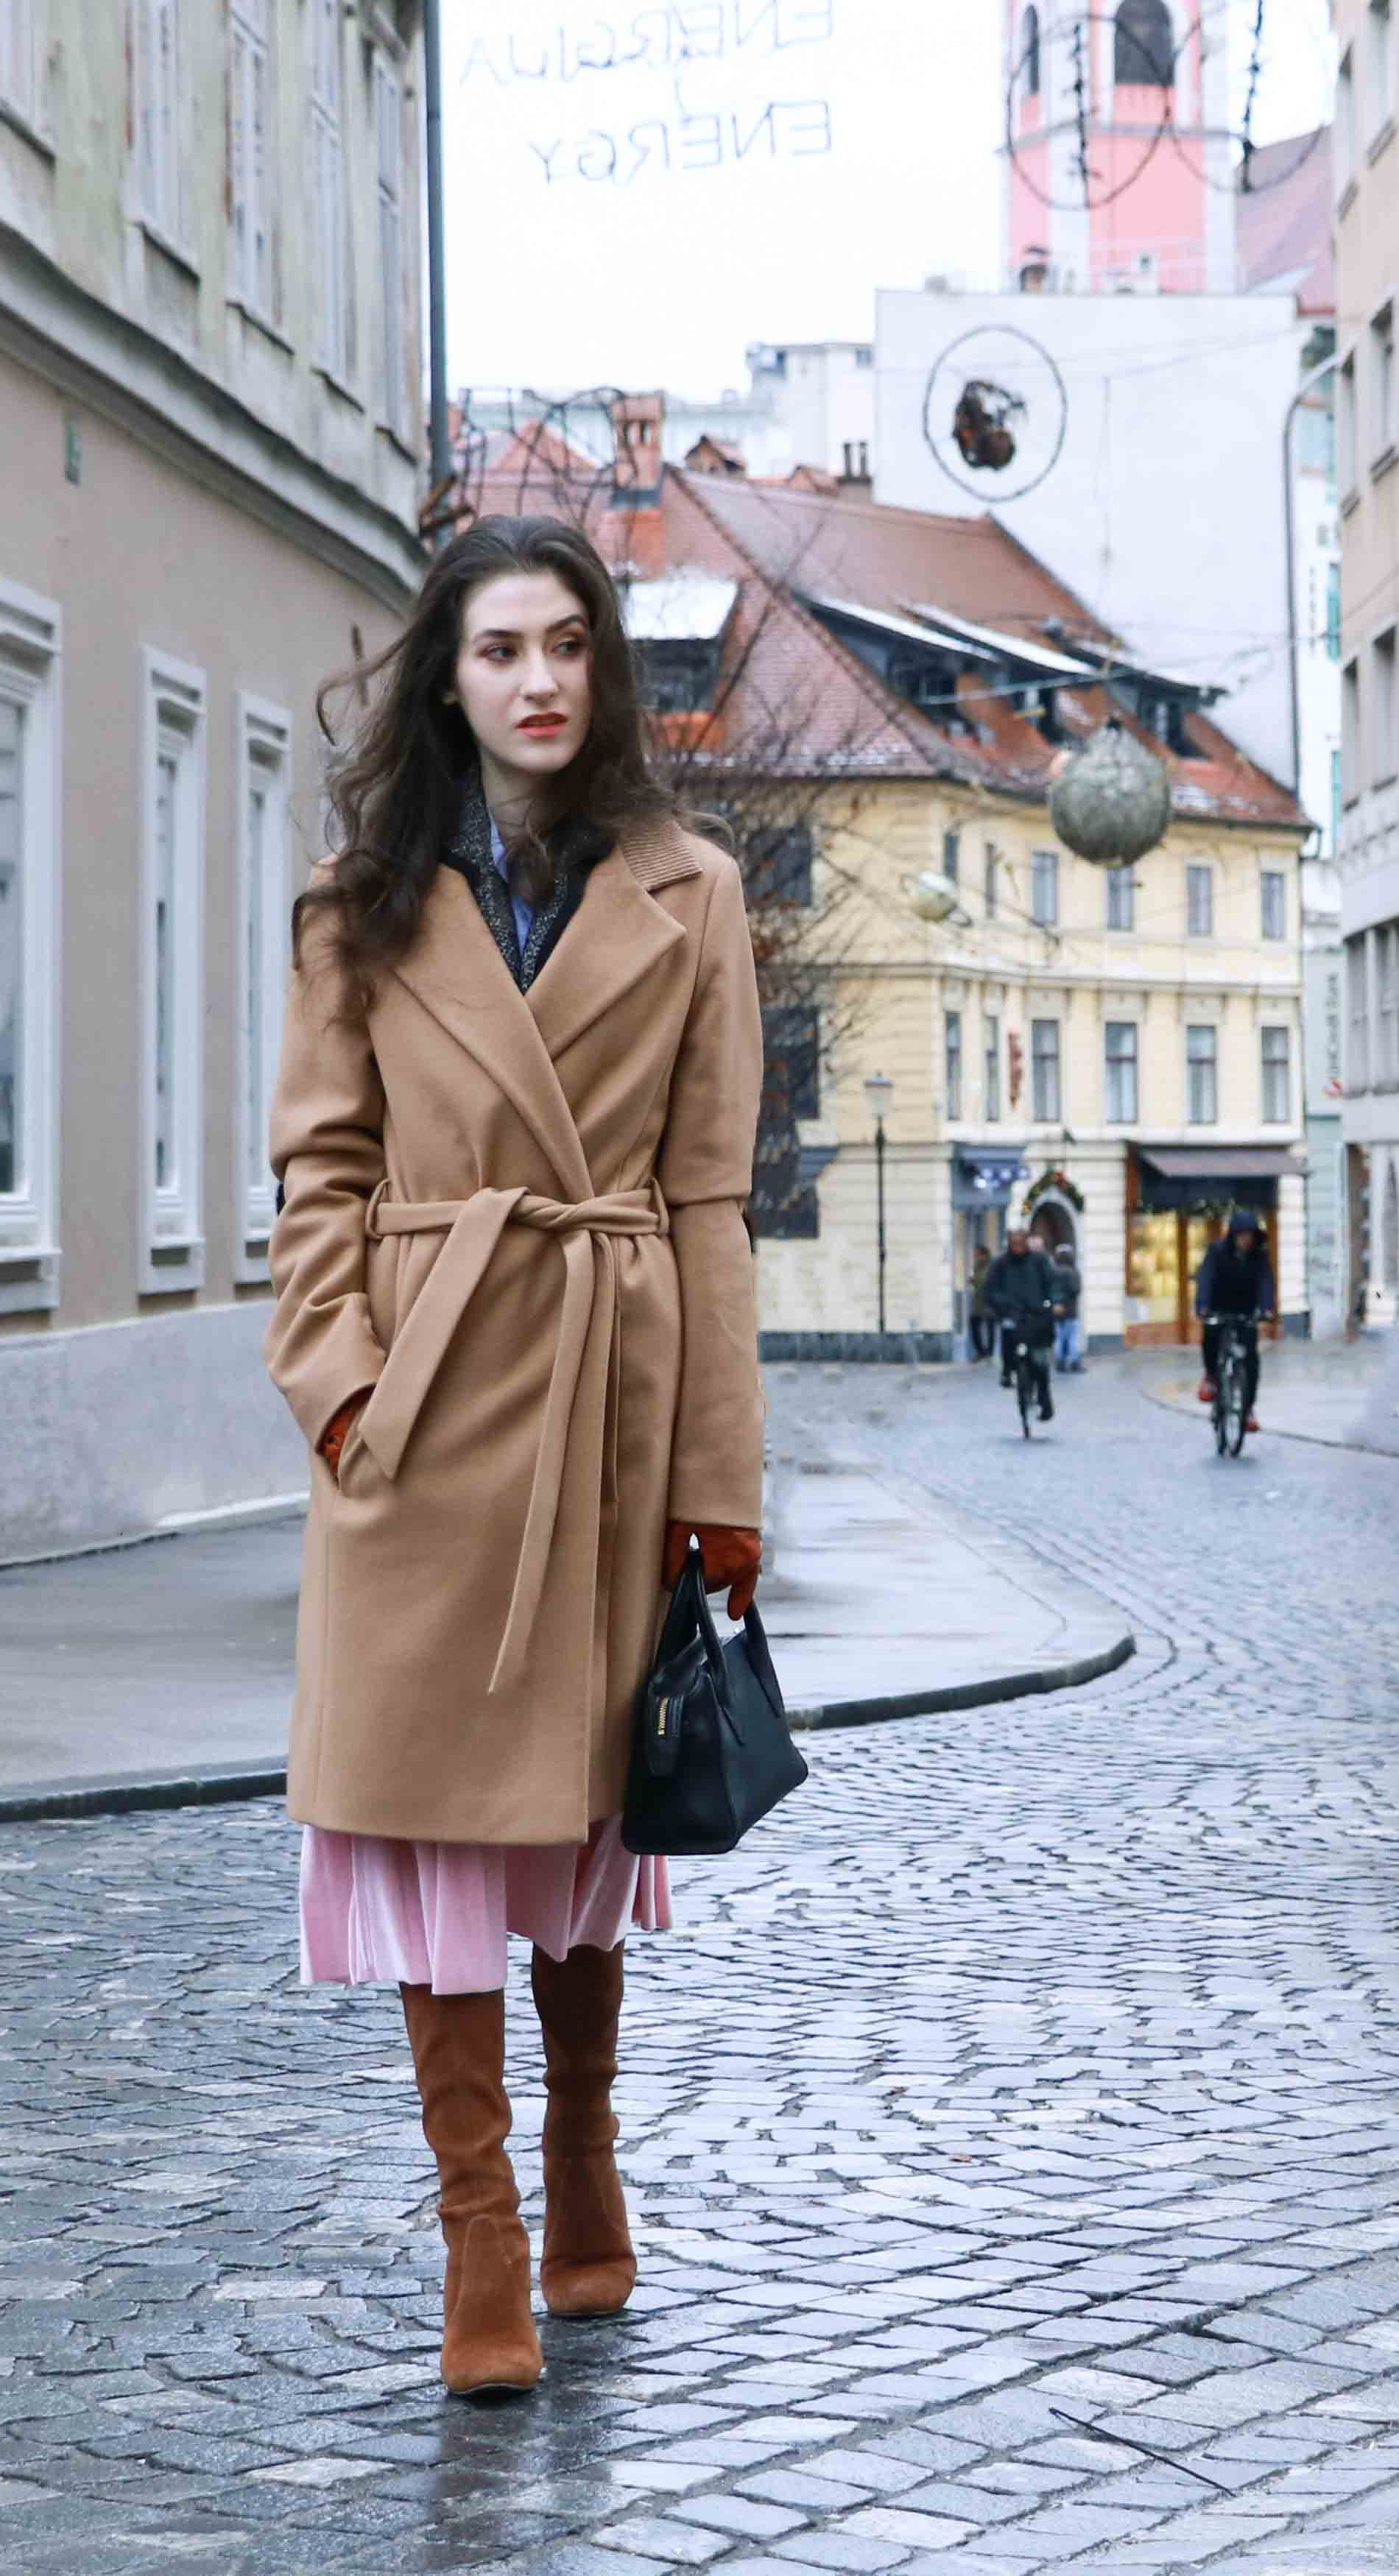 Fashion Blogger Veronika Lipar of Brunette from Wall Street on what to wear this Holiday season